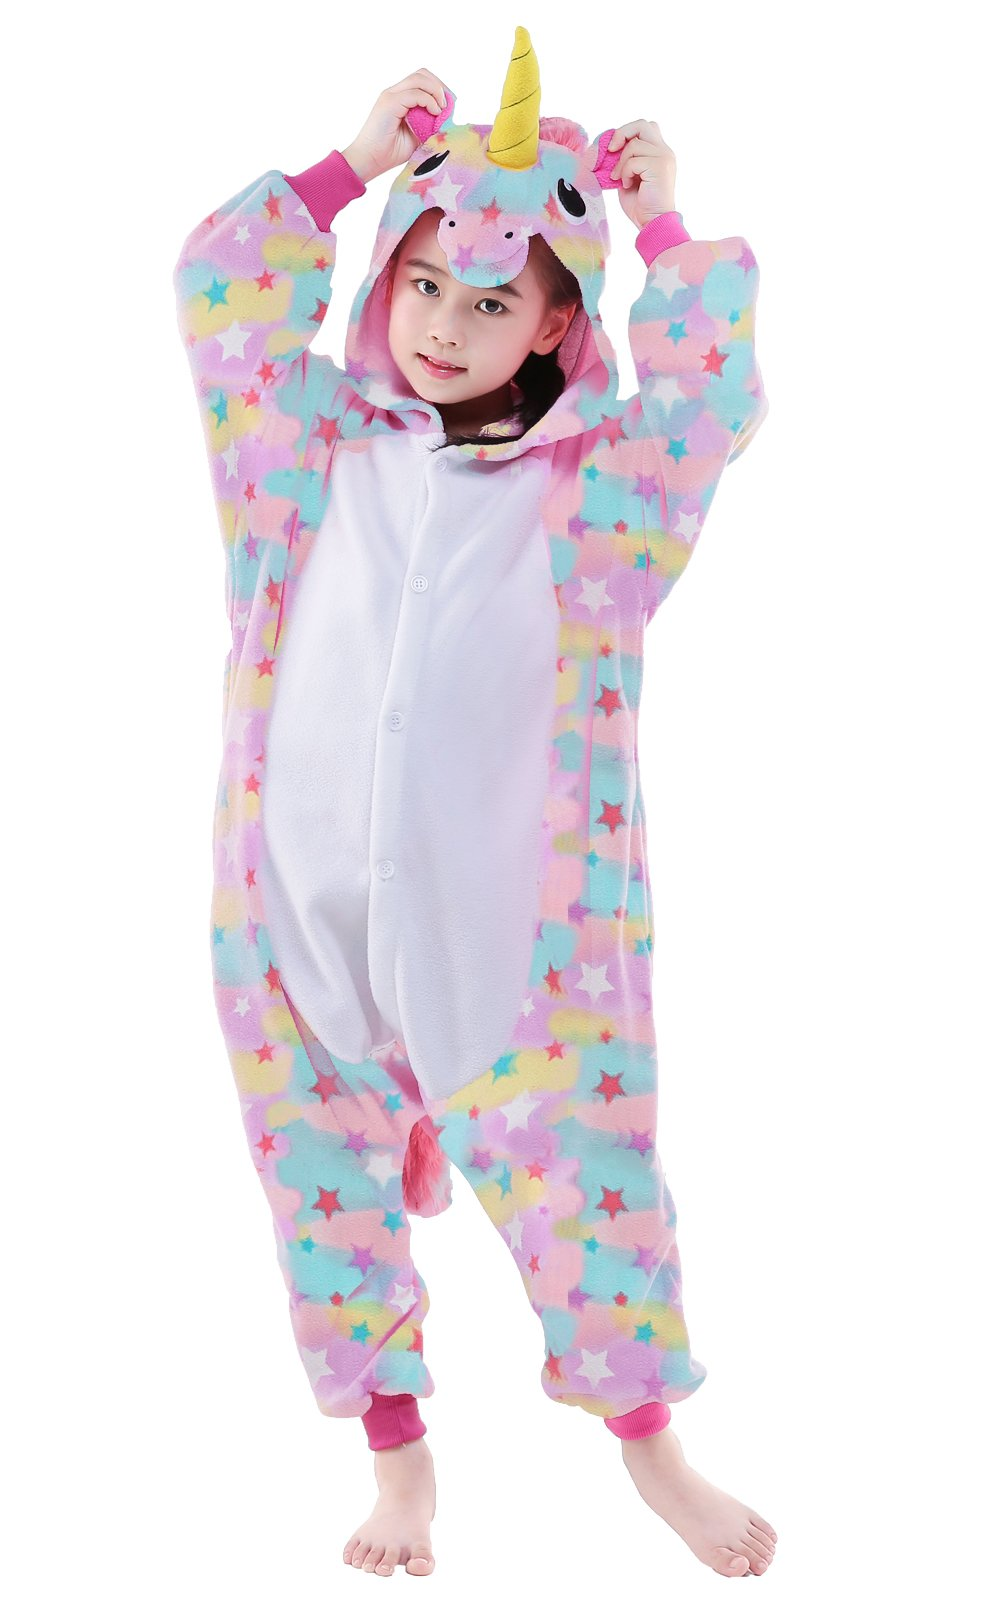 NEWCOSPLAY Cartoon Christmas Costumes Unisex Kids Unicorn Pajamas Gifts (115, color unicorn)